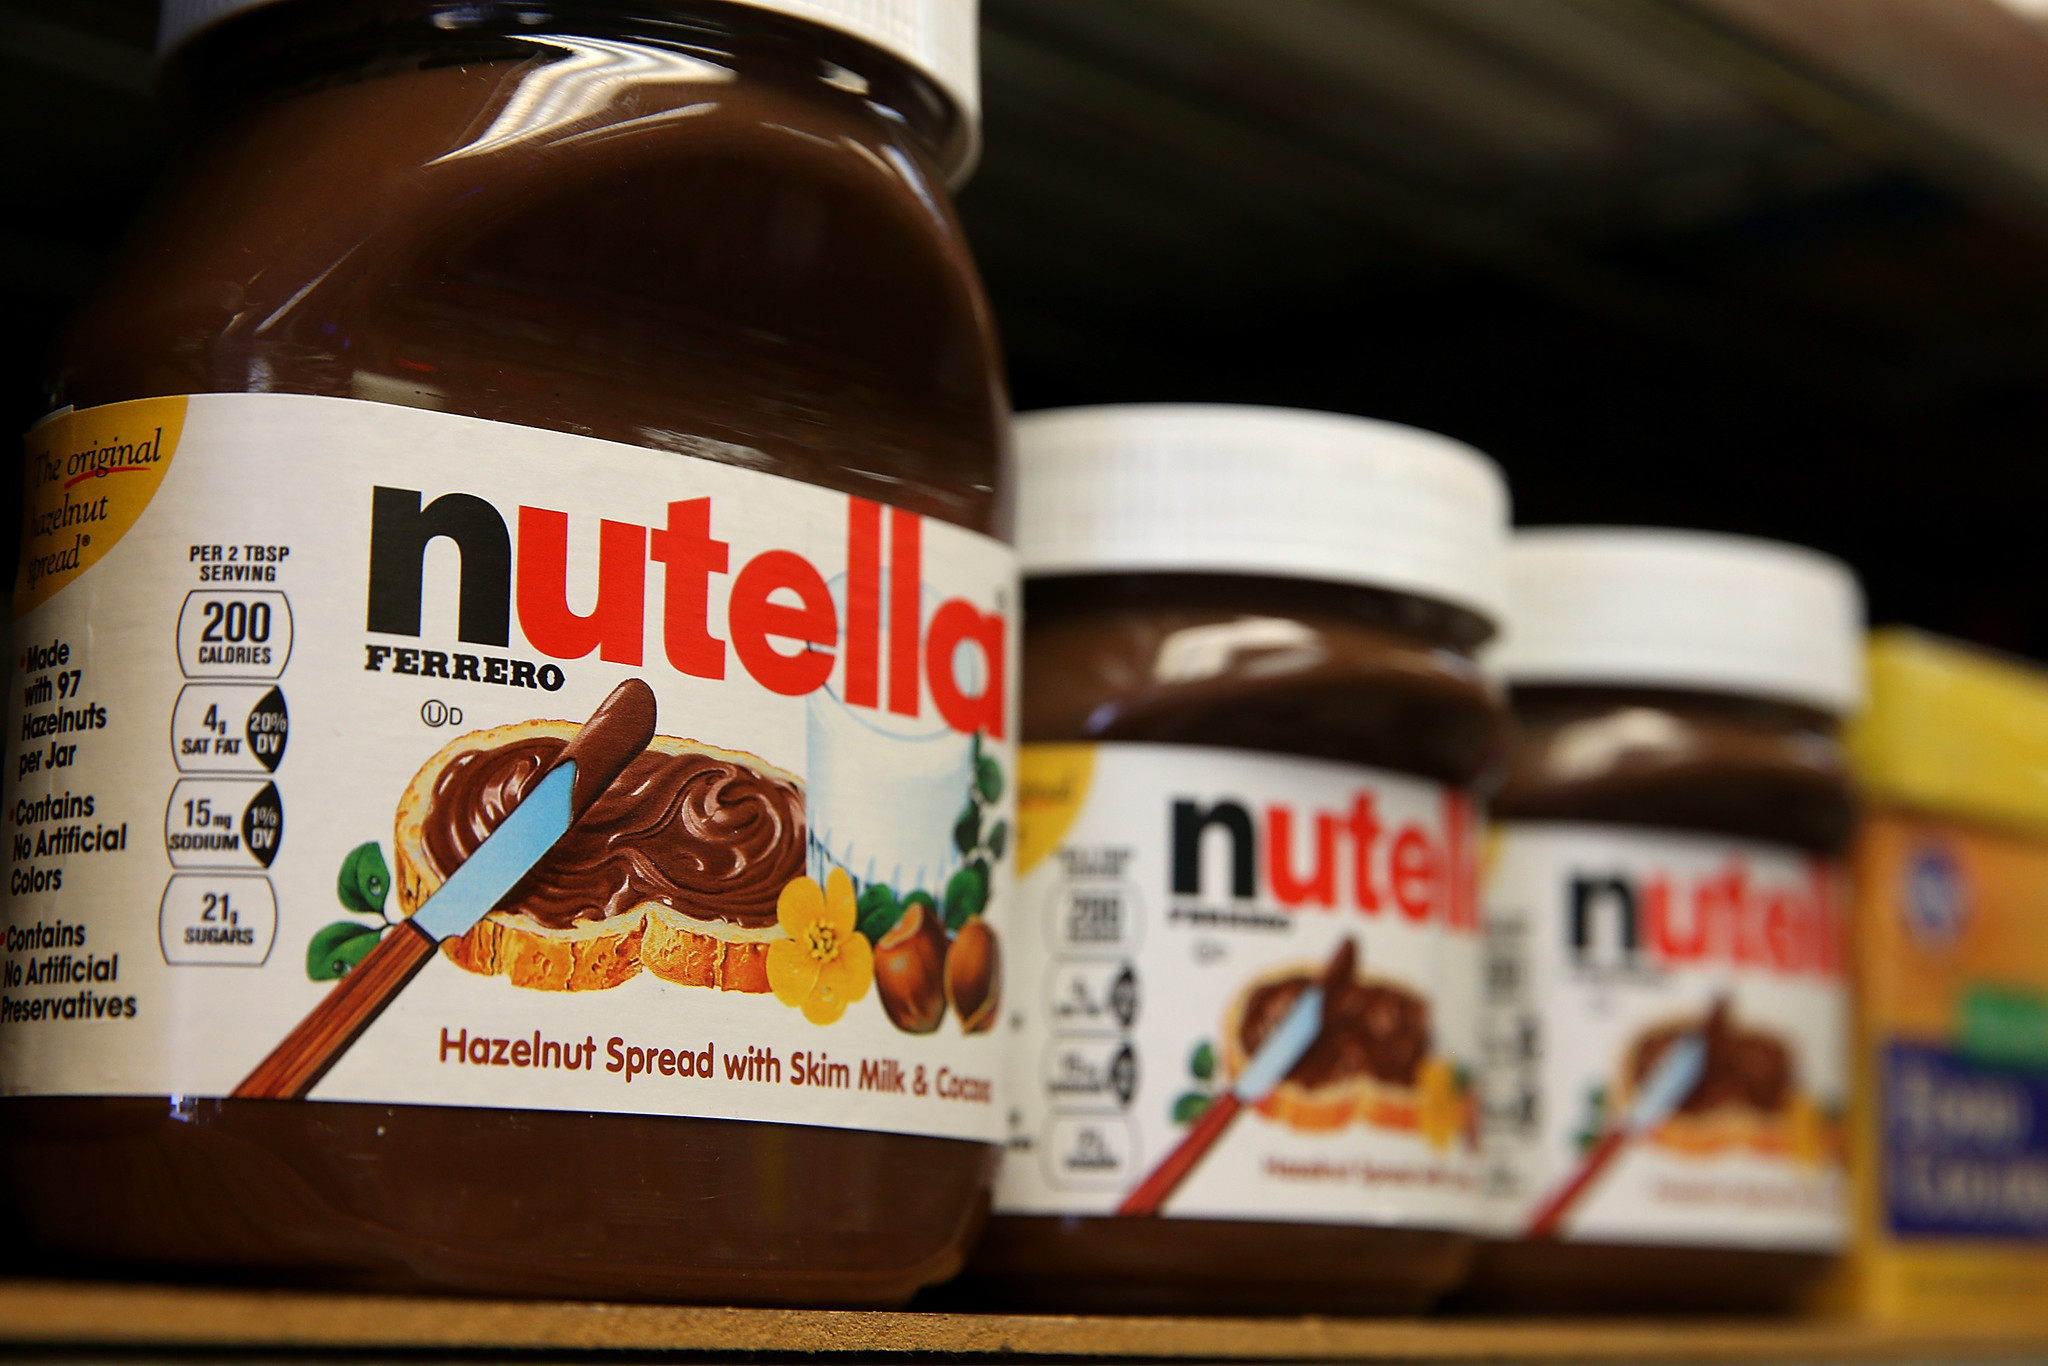 Surprise, Nutella is more unhealthy than you might think recommend